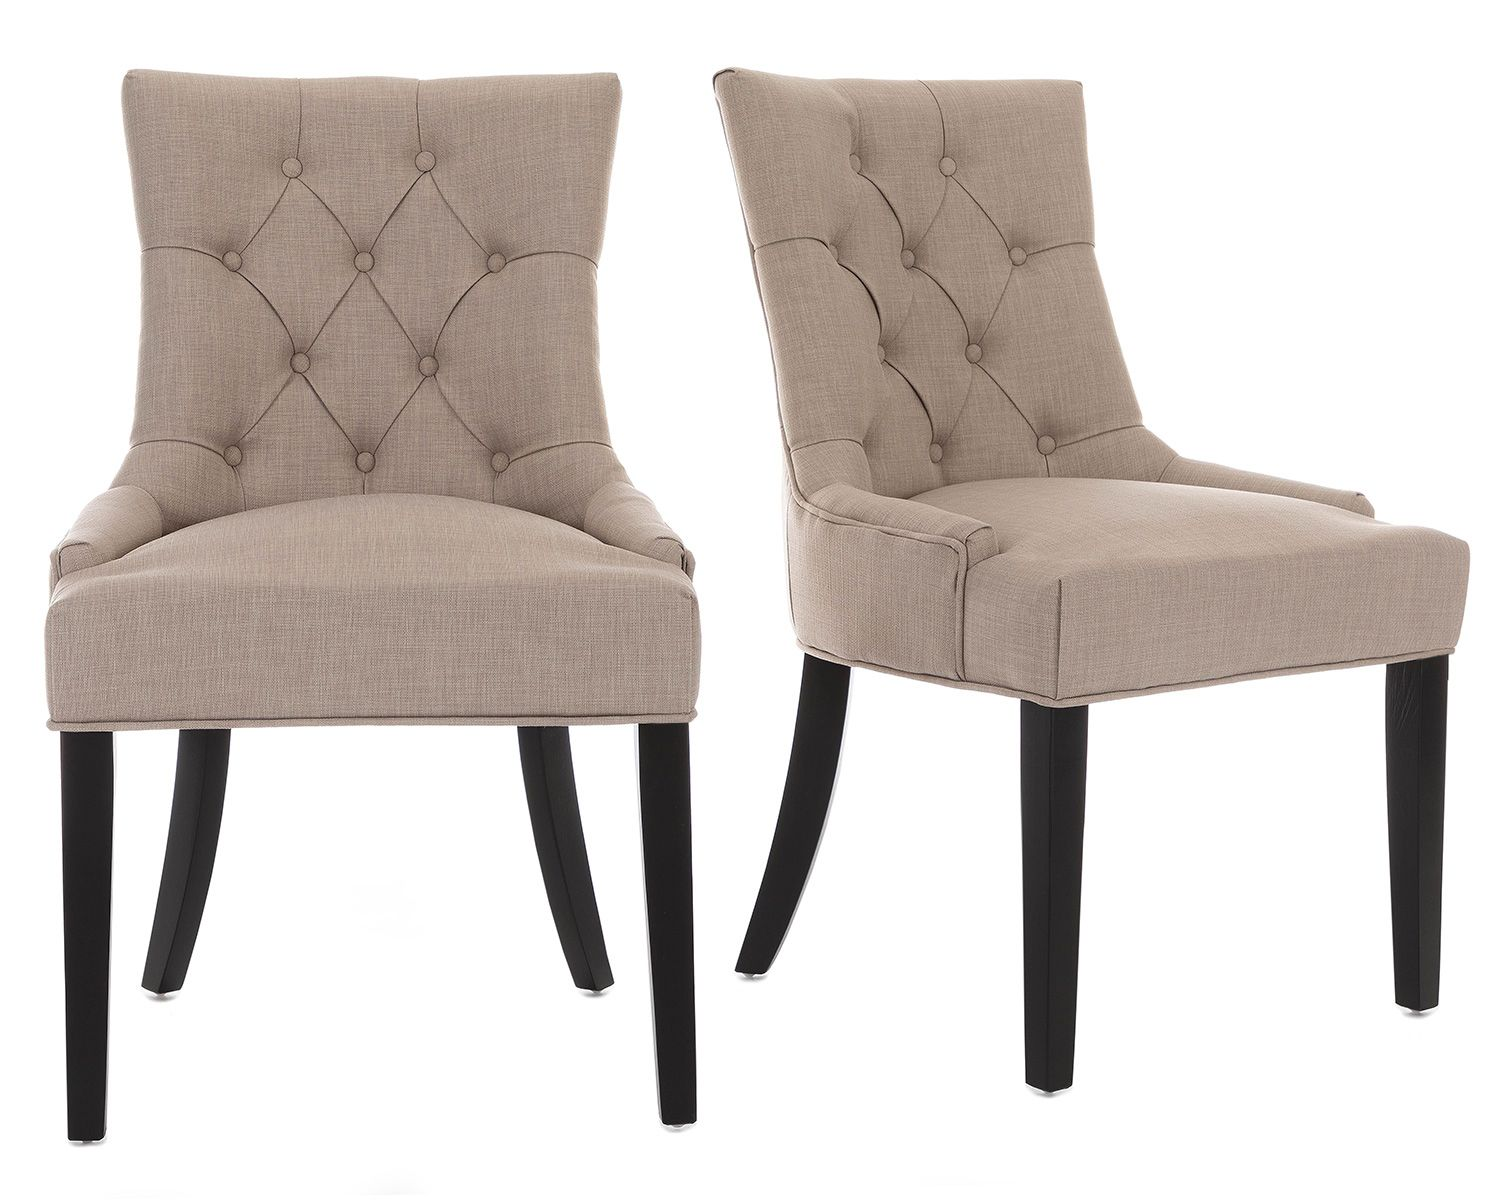 Verona Dining Chair In Cream Linen With Black Legs Upholstered